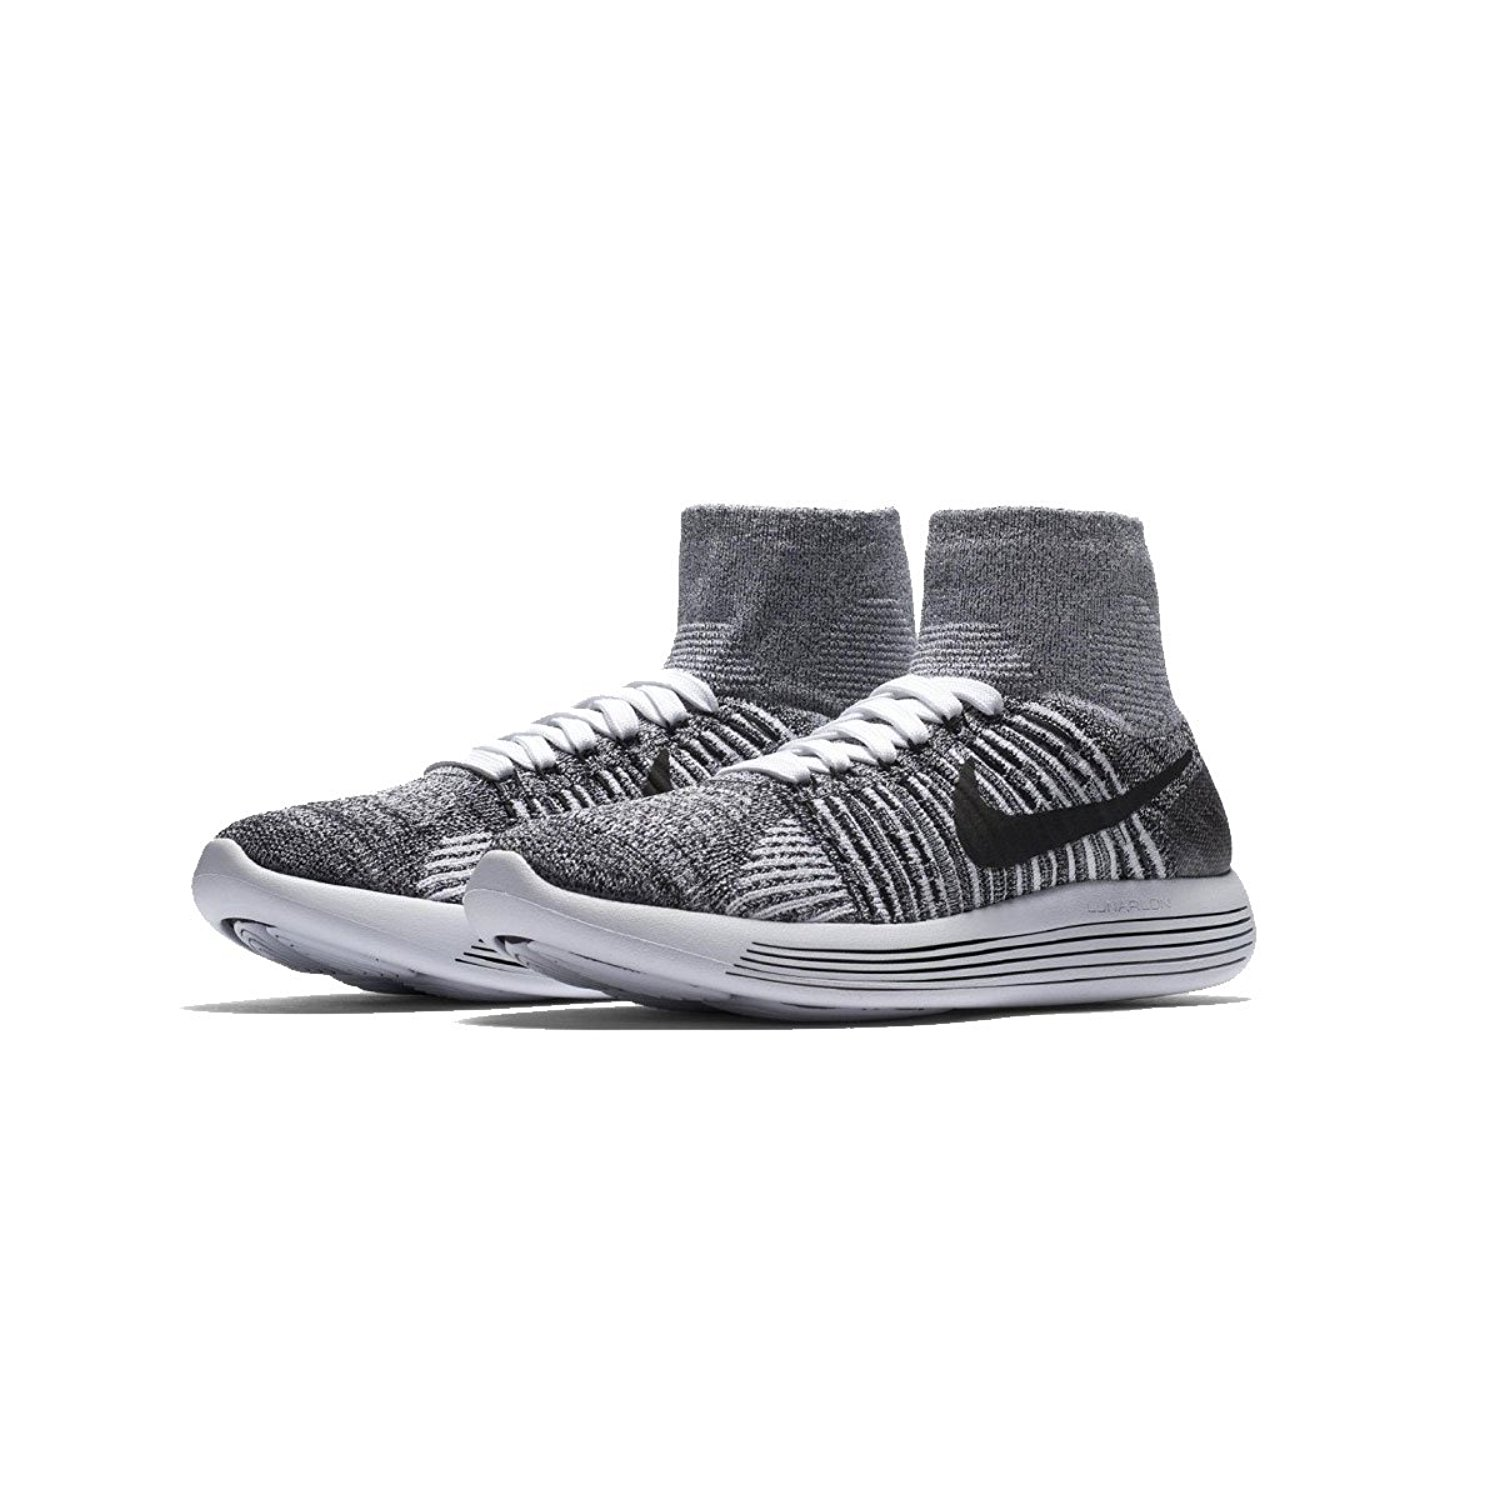 brand new f62eb b57d1 Nike Lunarepic Flyknit Reviewed & Tested for Performance